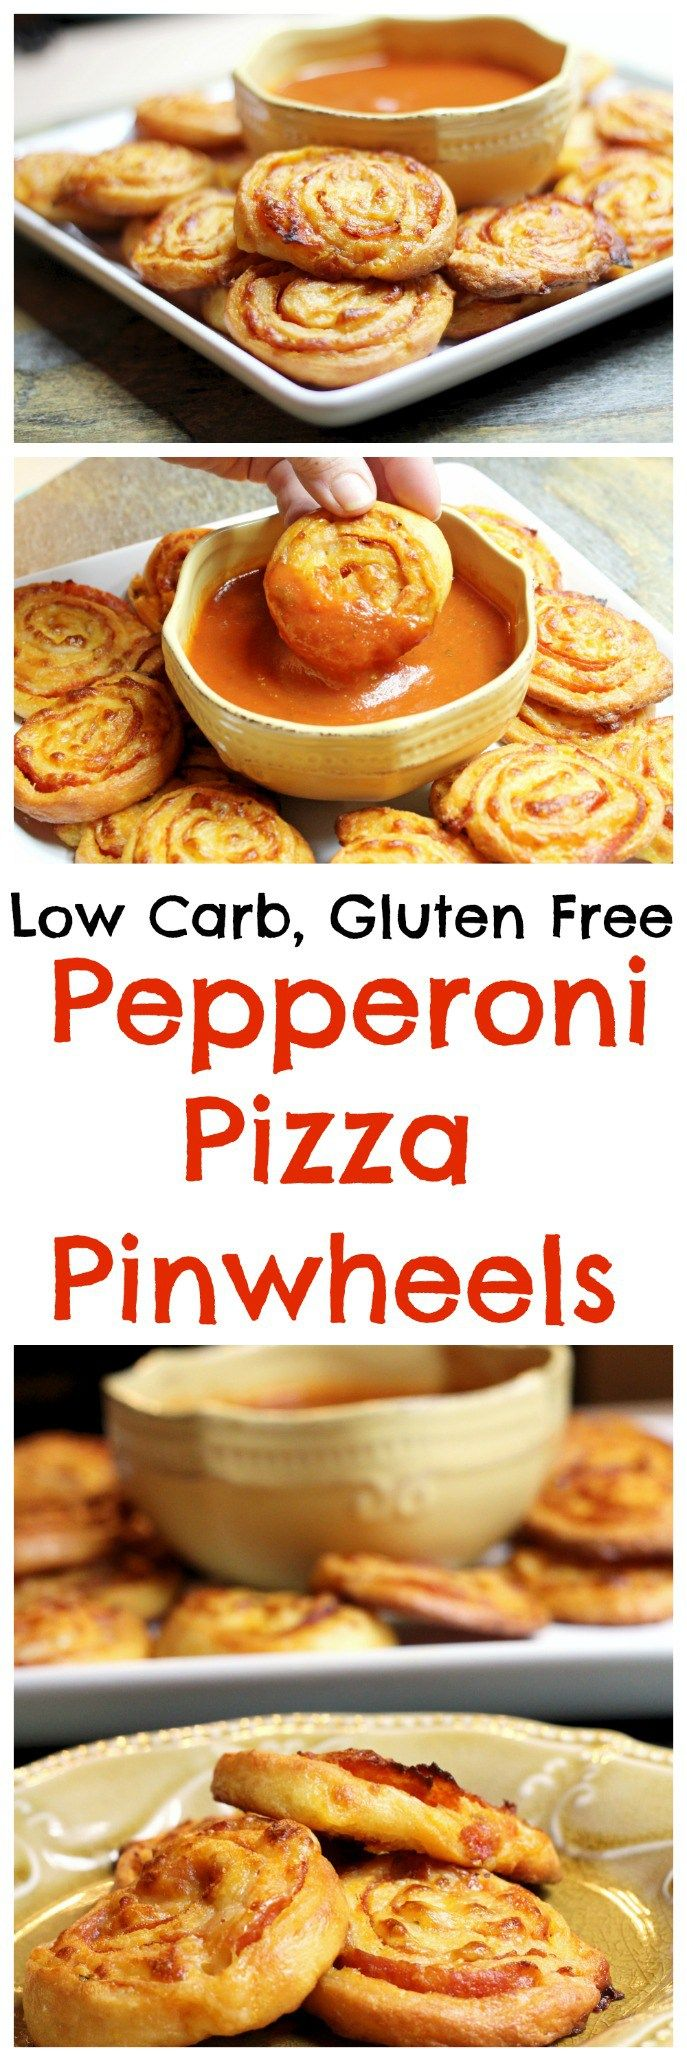 Pepperoni Pizza Pinwheels || Low Carb, Keto, Trim Healthy Mama, Gluten Free Snacks, Appetizers, Pizza